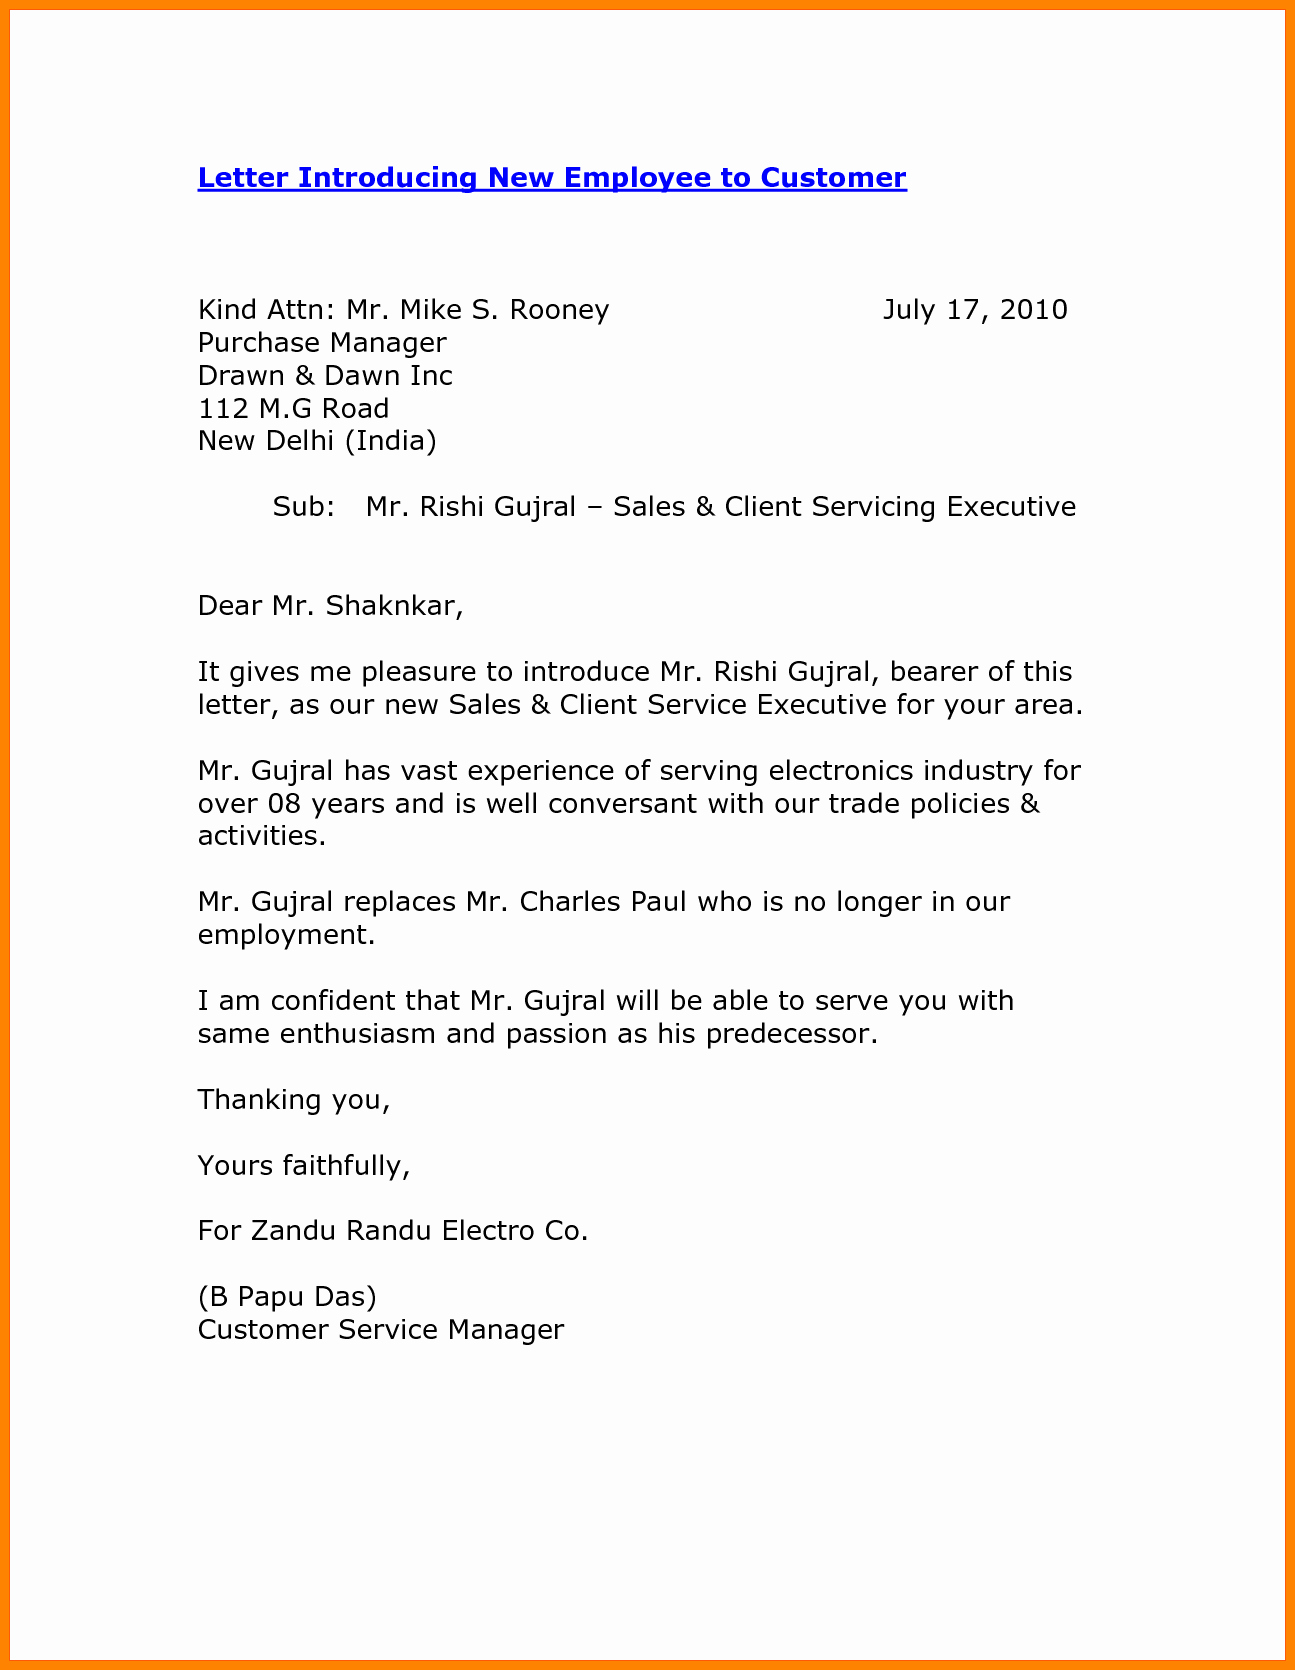 Introductory Letter for Employee Fresh 8 Self Introduction Email Sample for New Employee